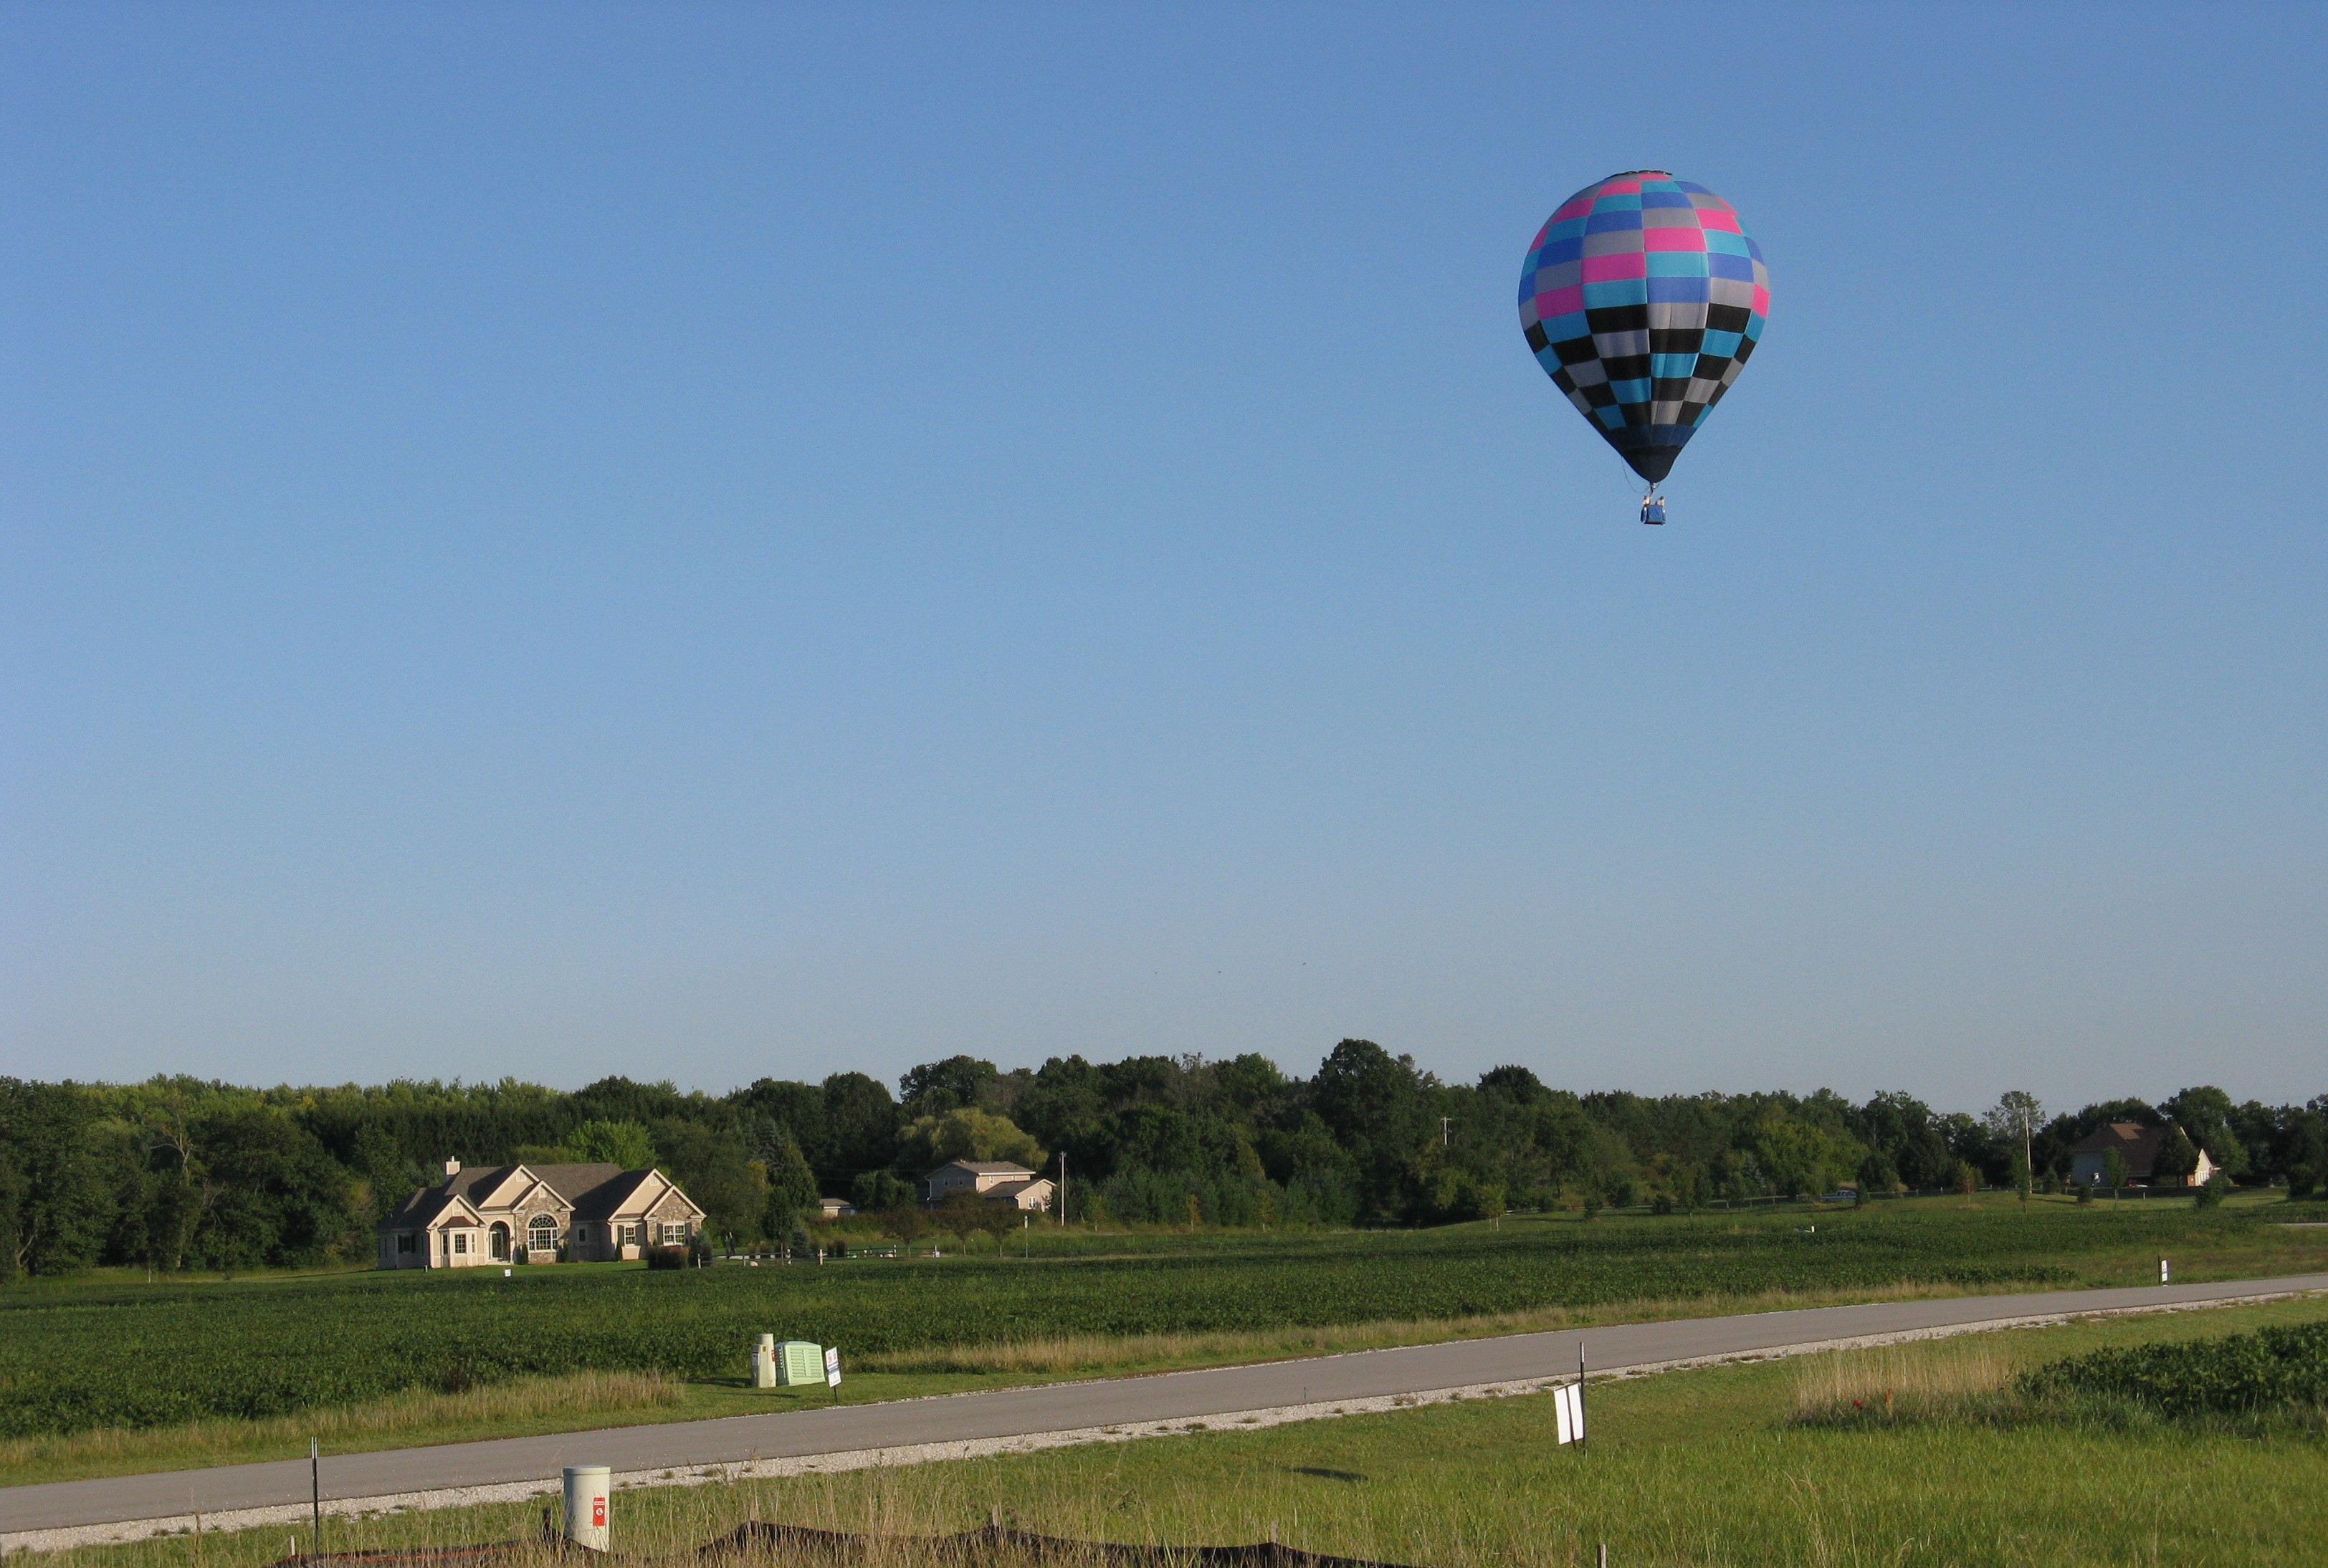 Gregg Schwalbach, hot air balloon over home